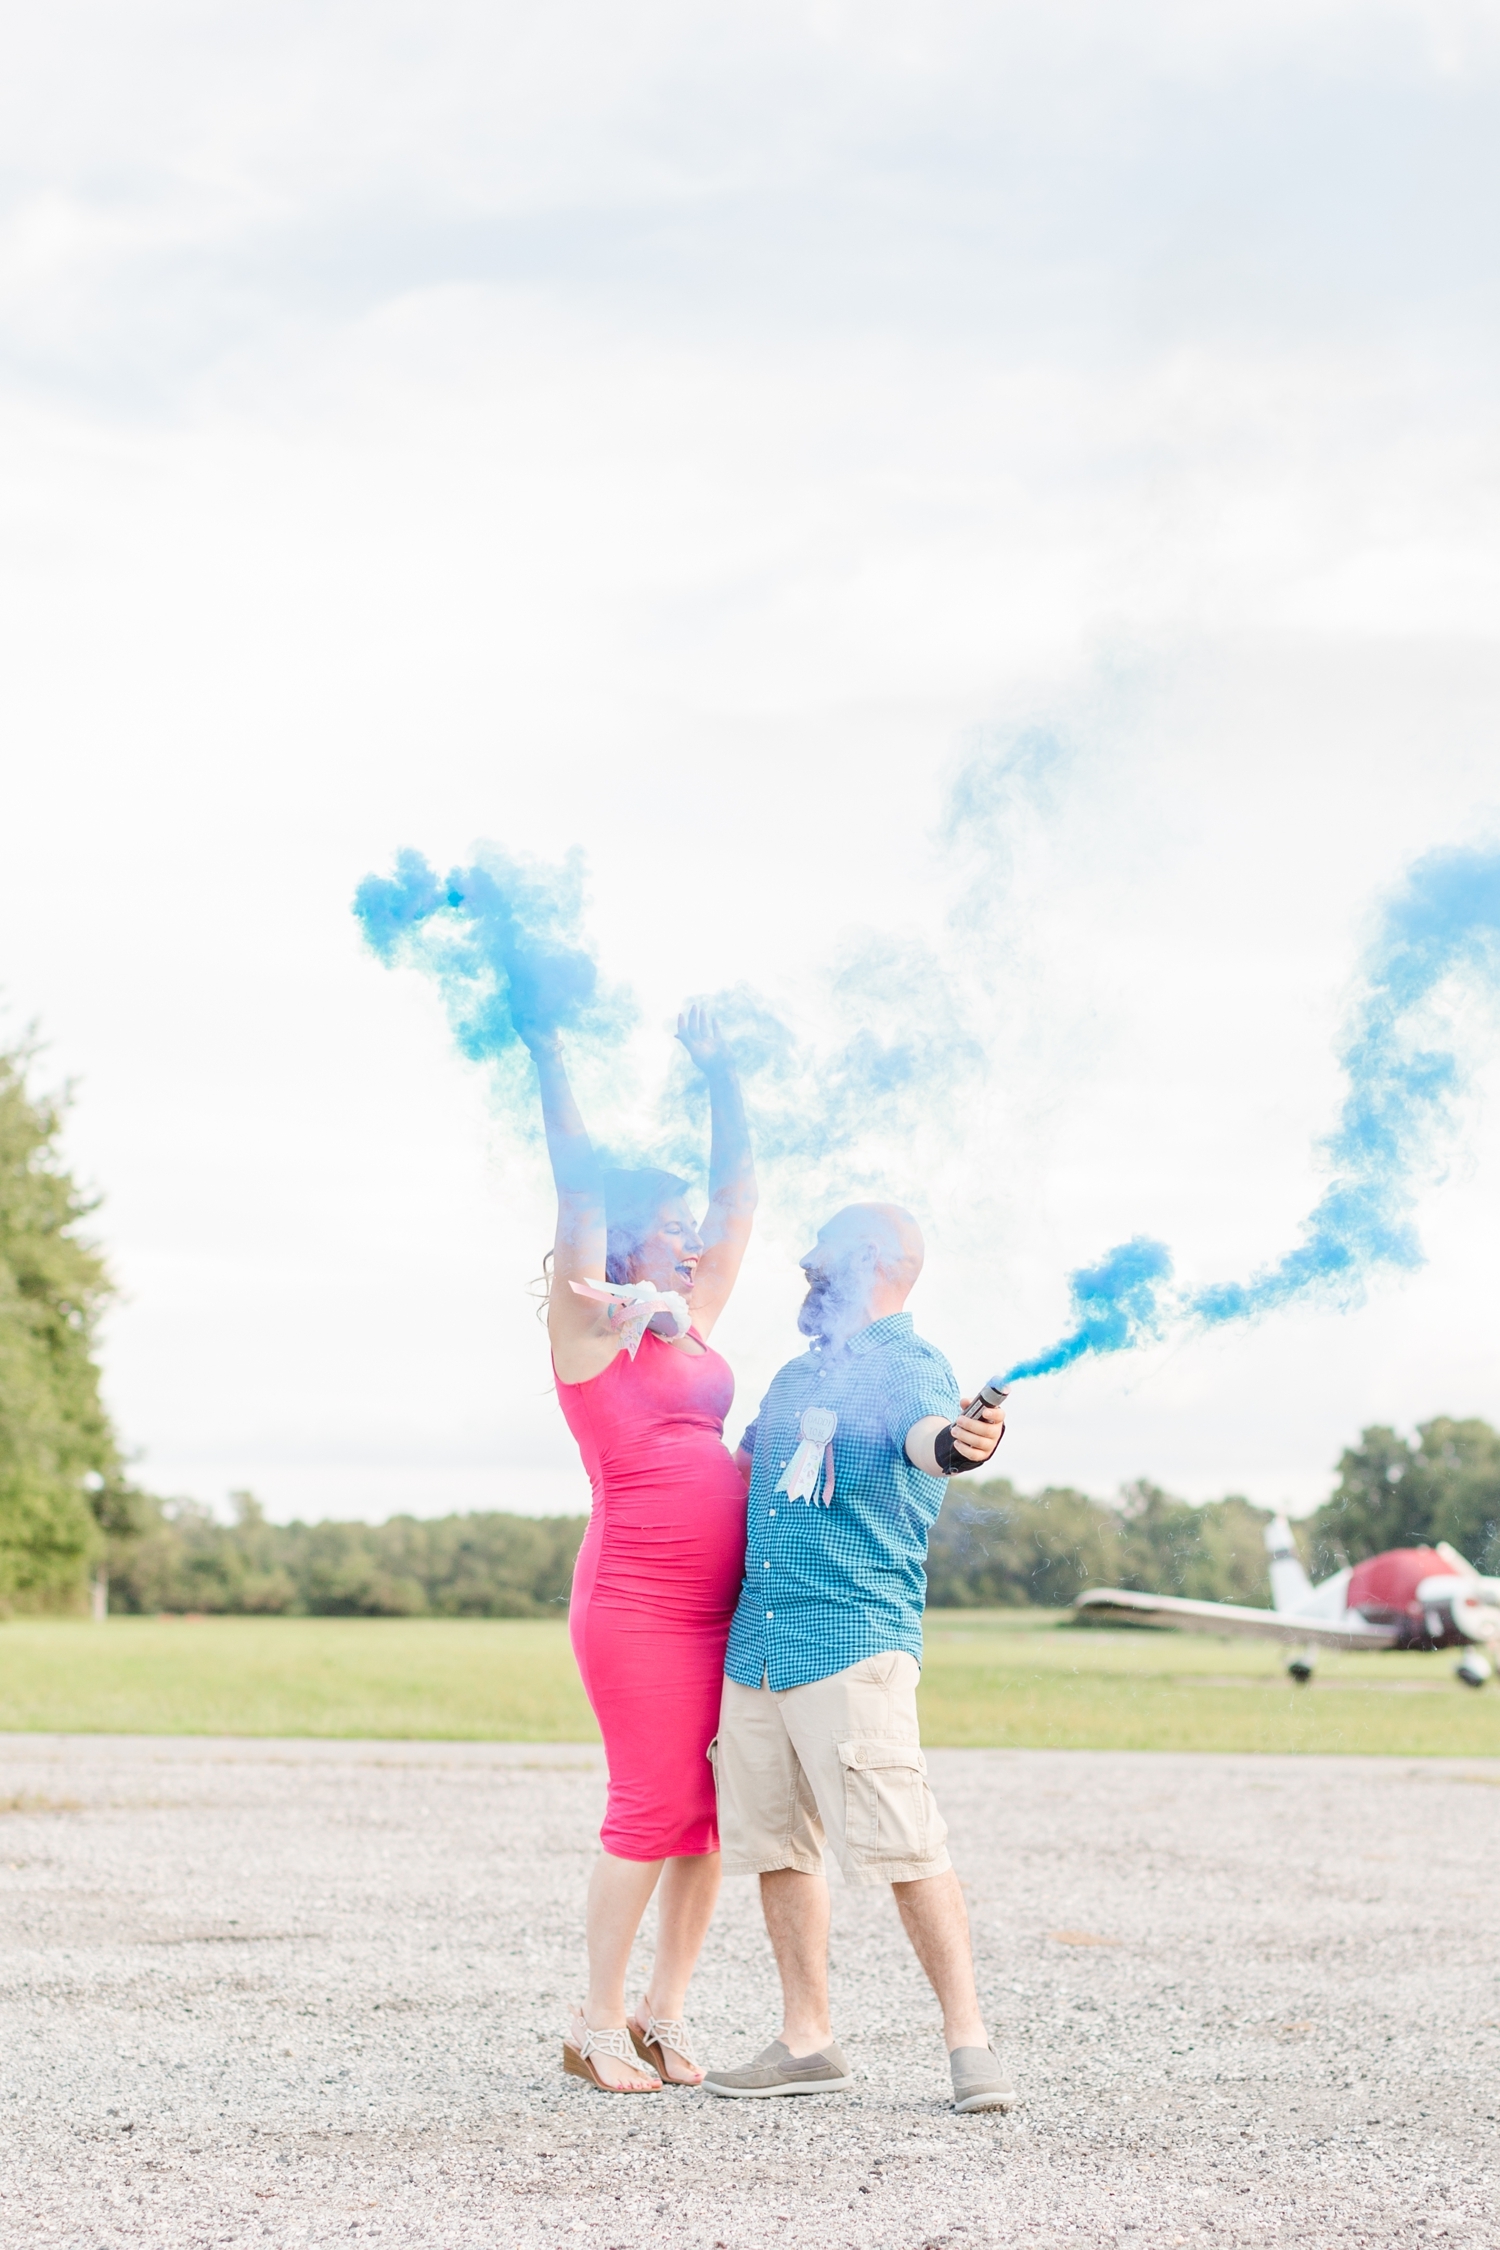 Calvert Gender Reveal-47_Baltimore-Maryland-Gender-Reveal-Maternity-photographer-anna-grace-photography-photo.jpg